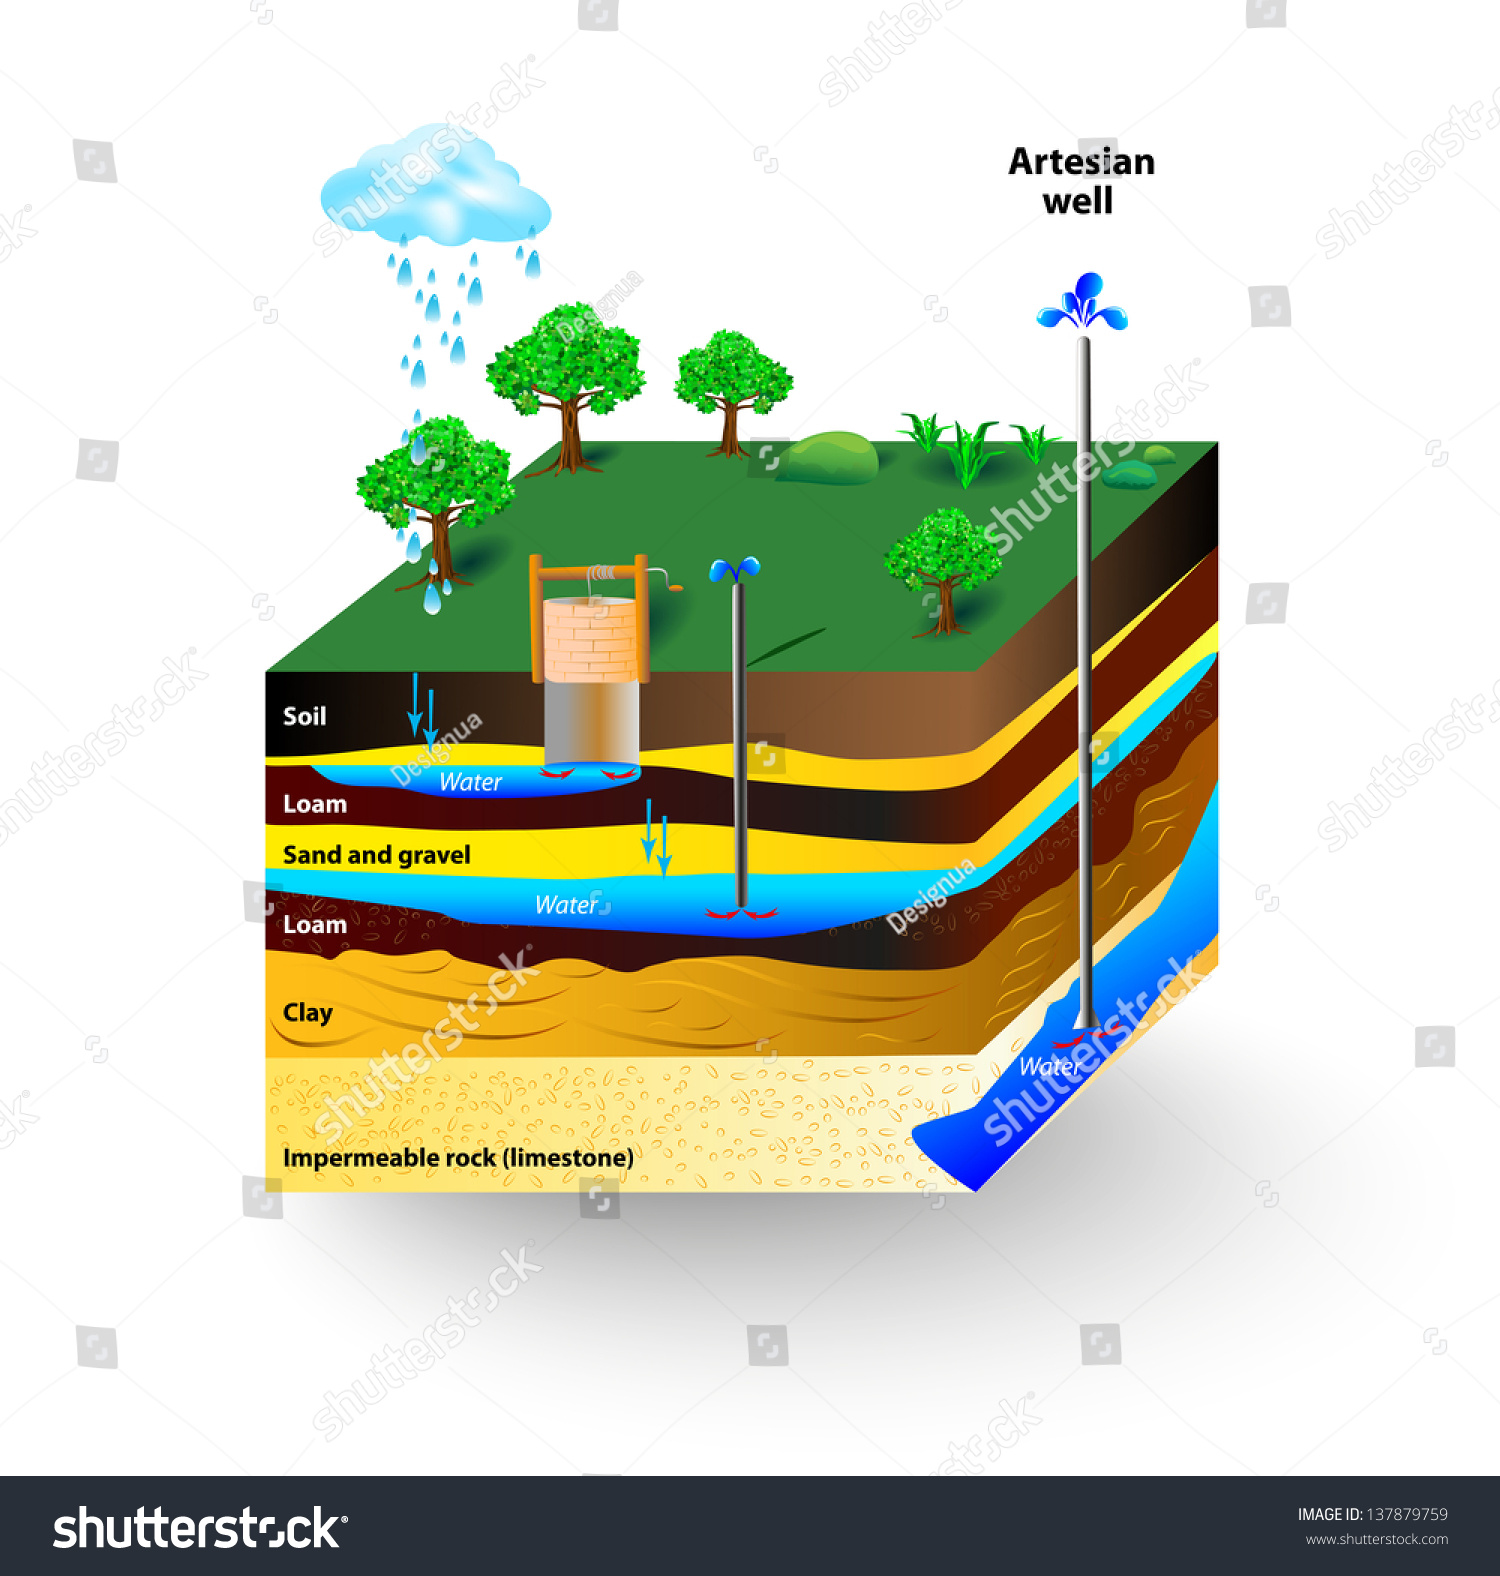 Artesian Water And Groundwater Schematic Of An Artesian